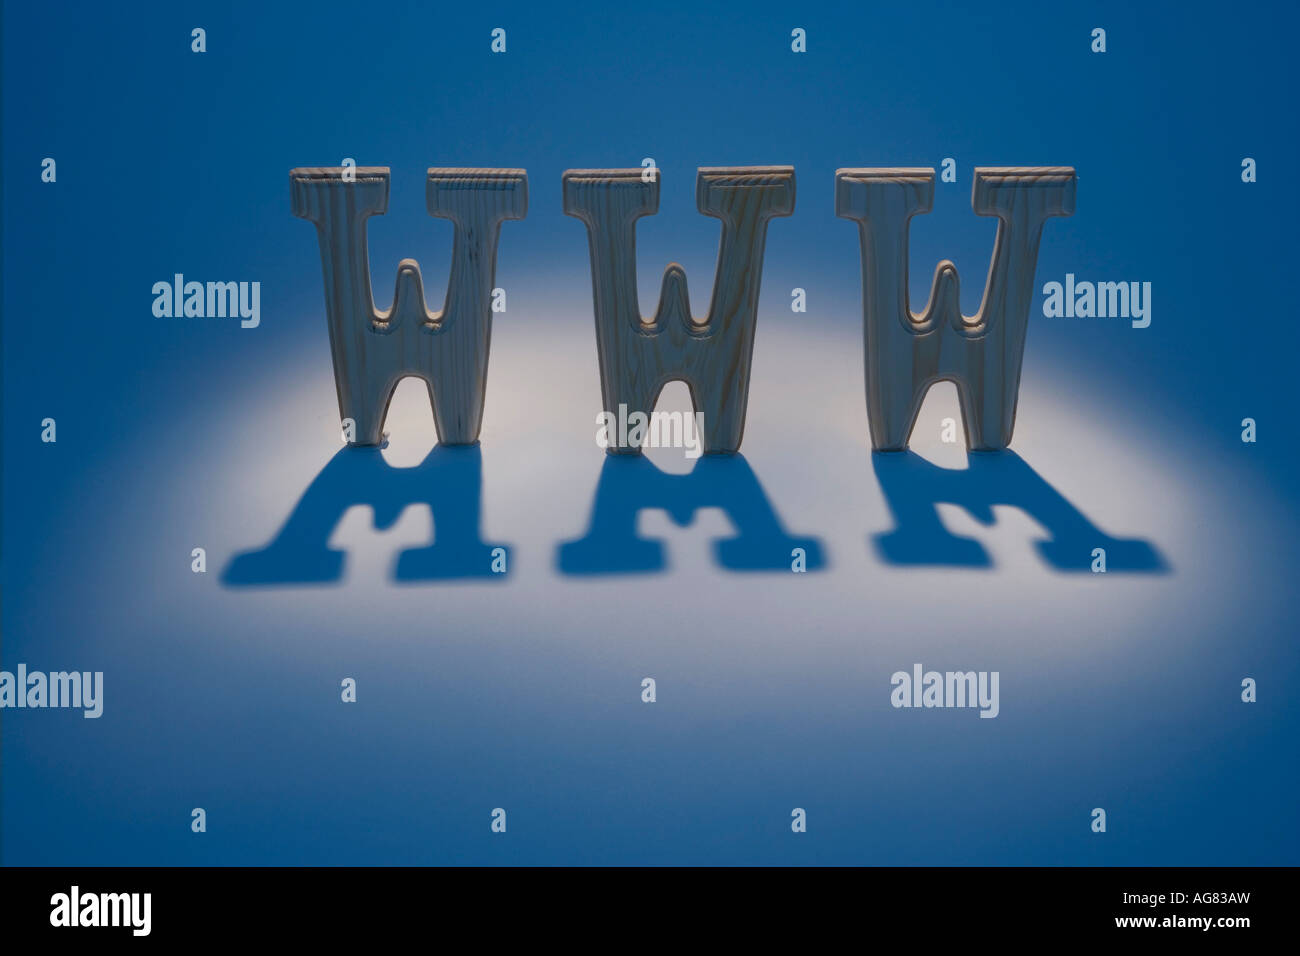 Abbreviation for the World Wide Web - Stock Image